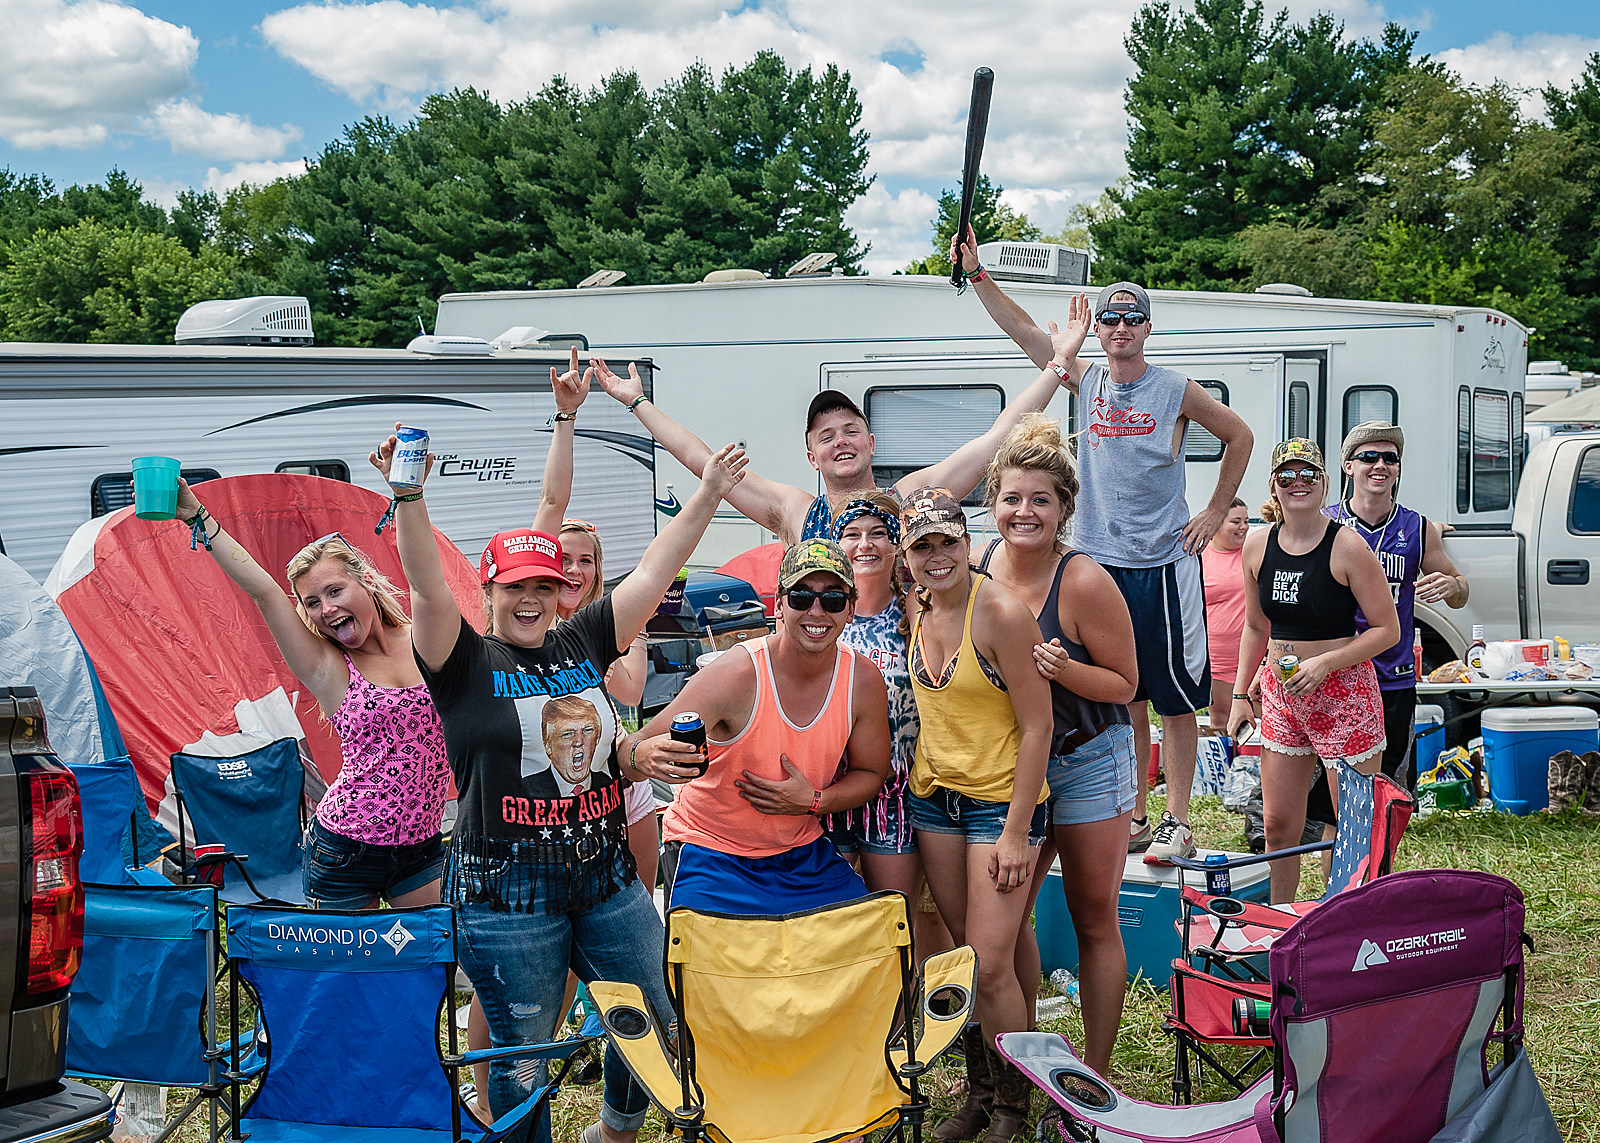 Country on the River 2016 pictures